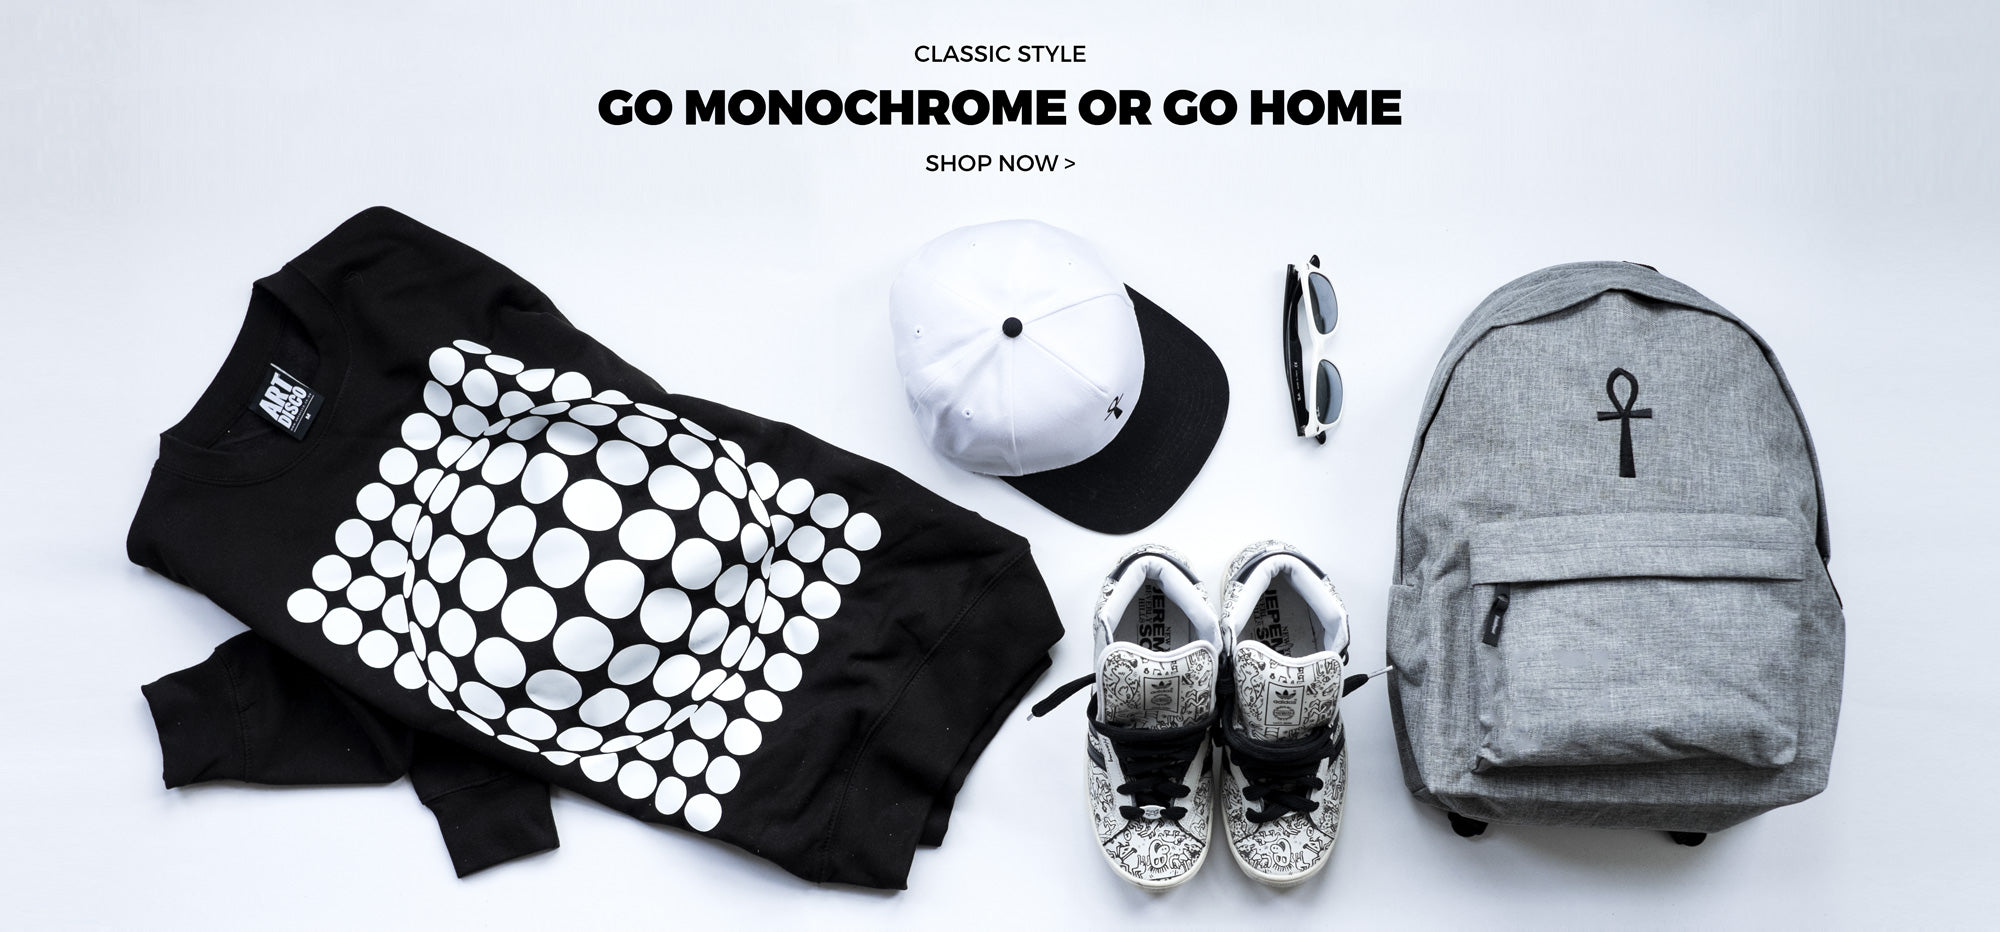 Go Monochrome or Go Home | Shop now